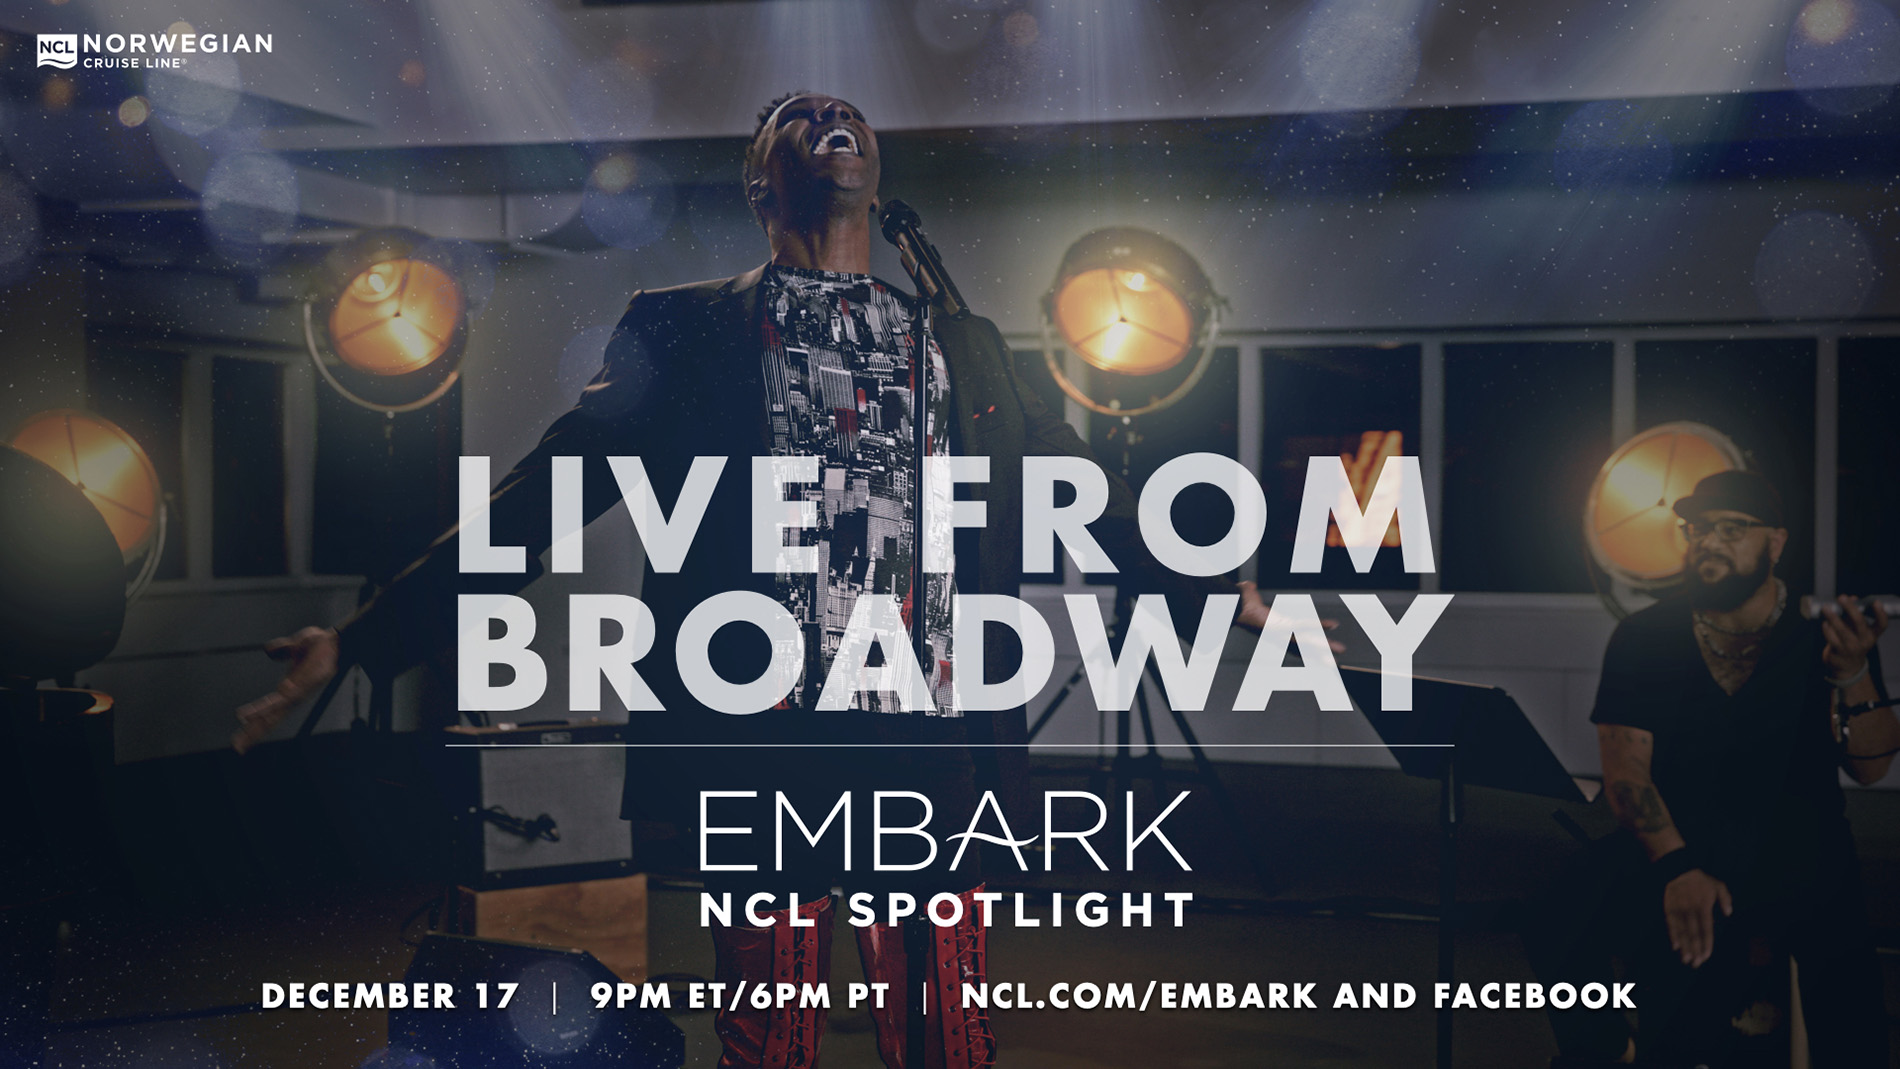 """Norwegian Cruise Line reunites a star-studded cast for the second """"EMBARK NCL Spotlight"""" episode, """"Live From Broadway,"""" featuring exclusive performances from award-winning productions available across its fleet. The episode will stream live on ncl.com/embark on Dec. 17, 2020 at 9 p.m. ET before being made available on-demand."""